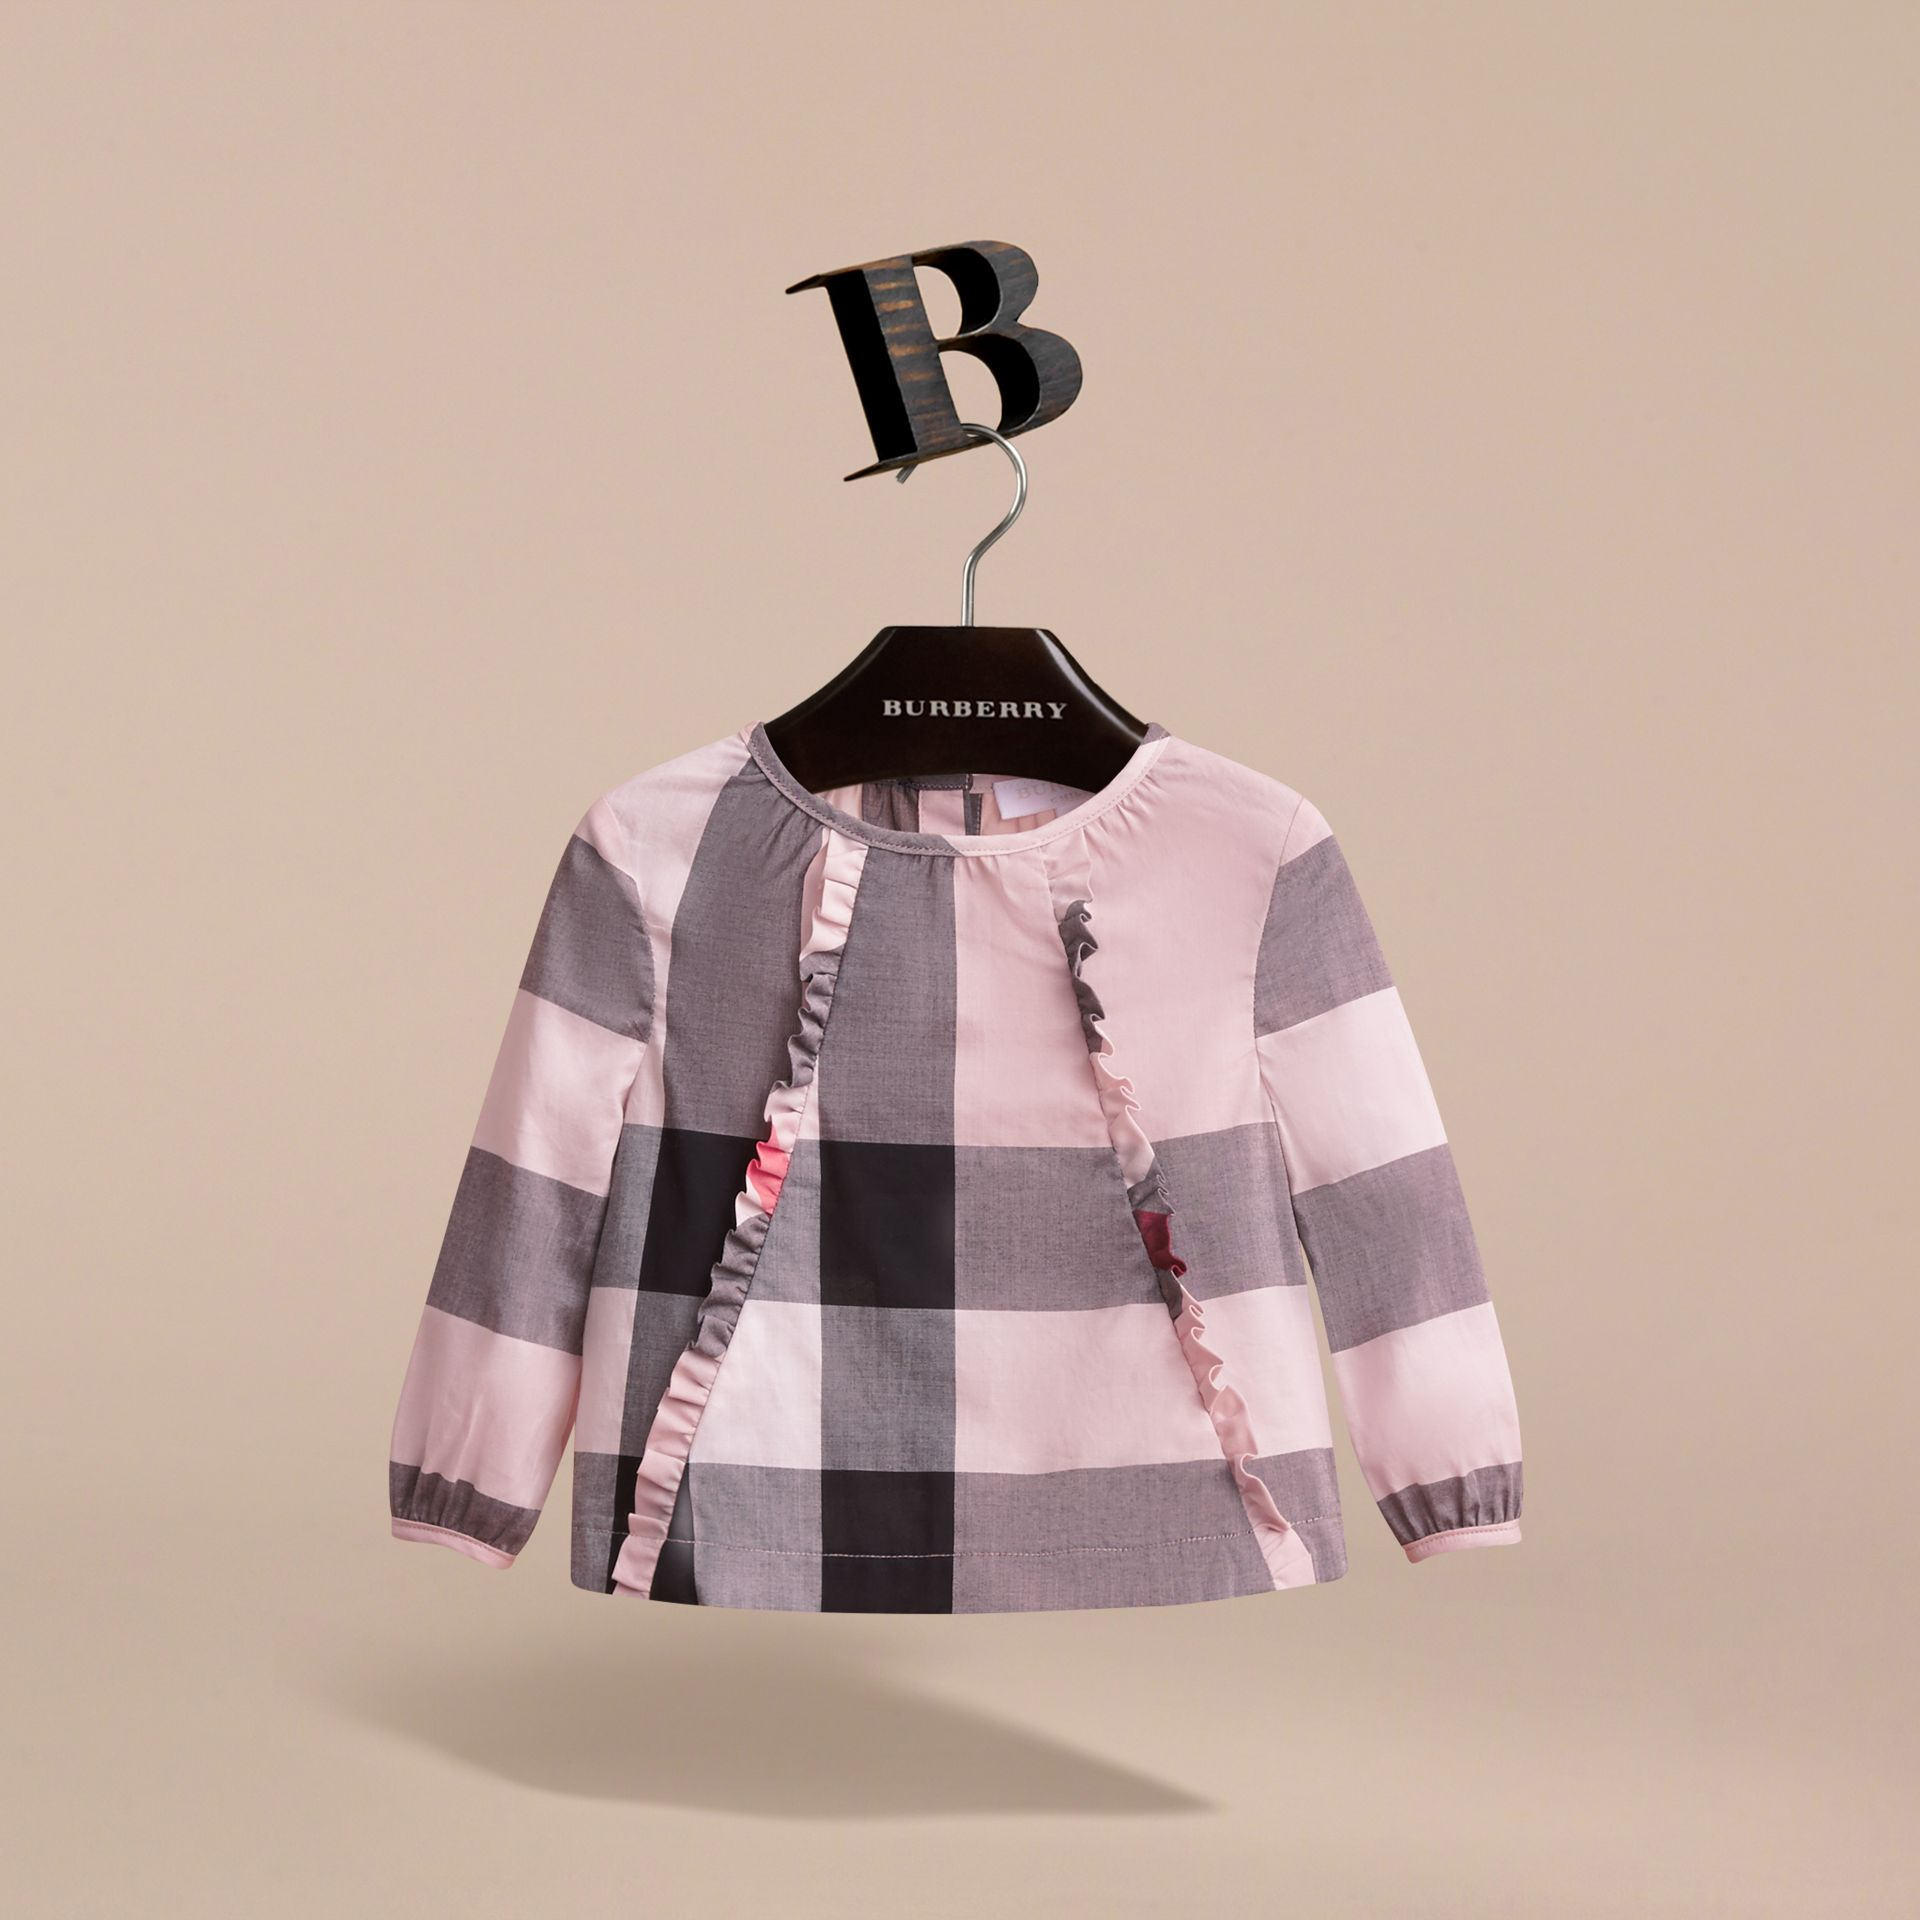 Ruffle Detail Check Cotton Top in Vintage Pink | Burberry - gallery image 3